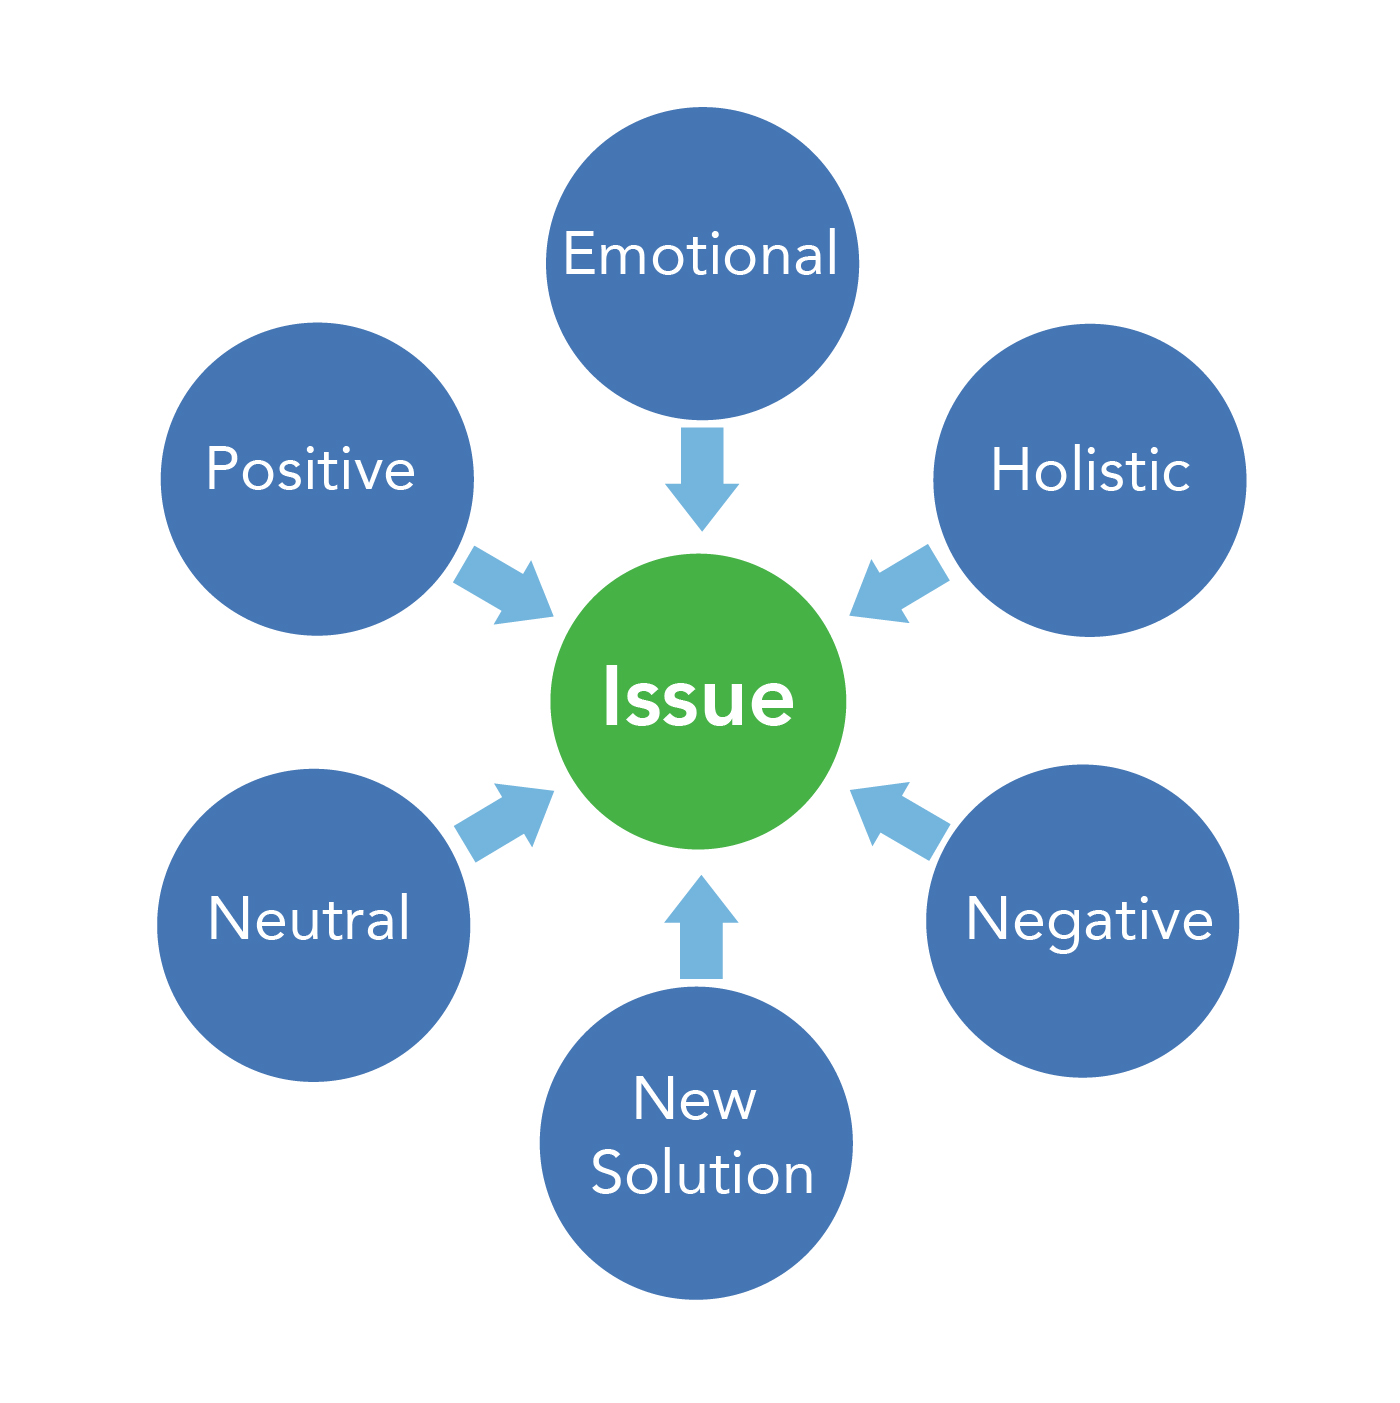 A chart indicating the different ways individuals approach an issue. The positions are natural, emotional, negative, positive, new solution, and holistic.